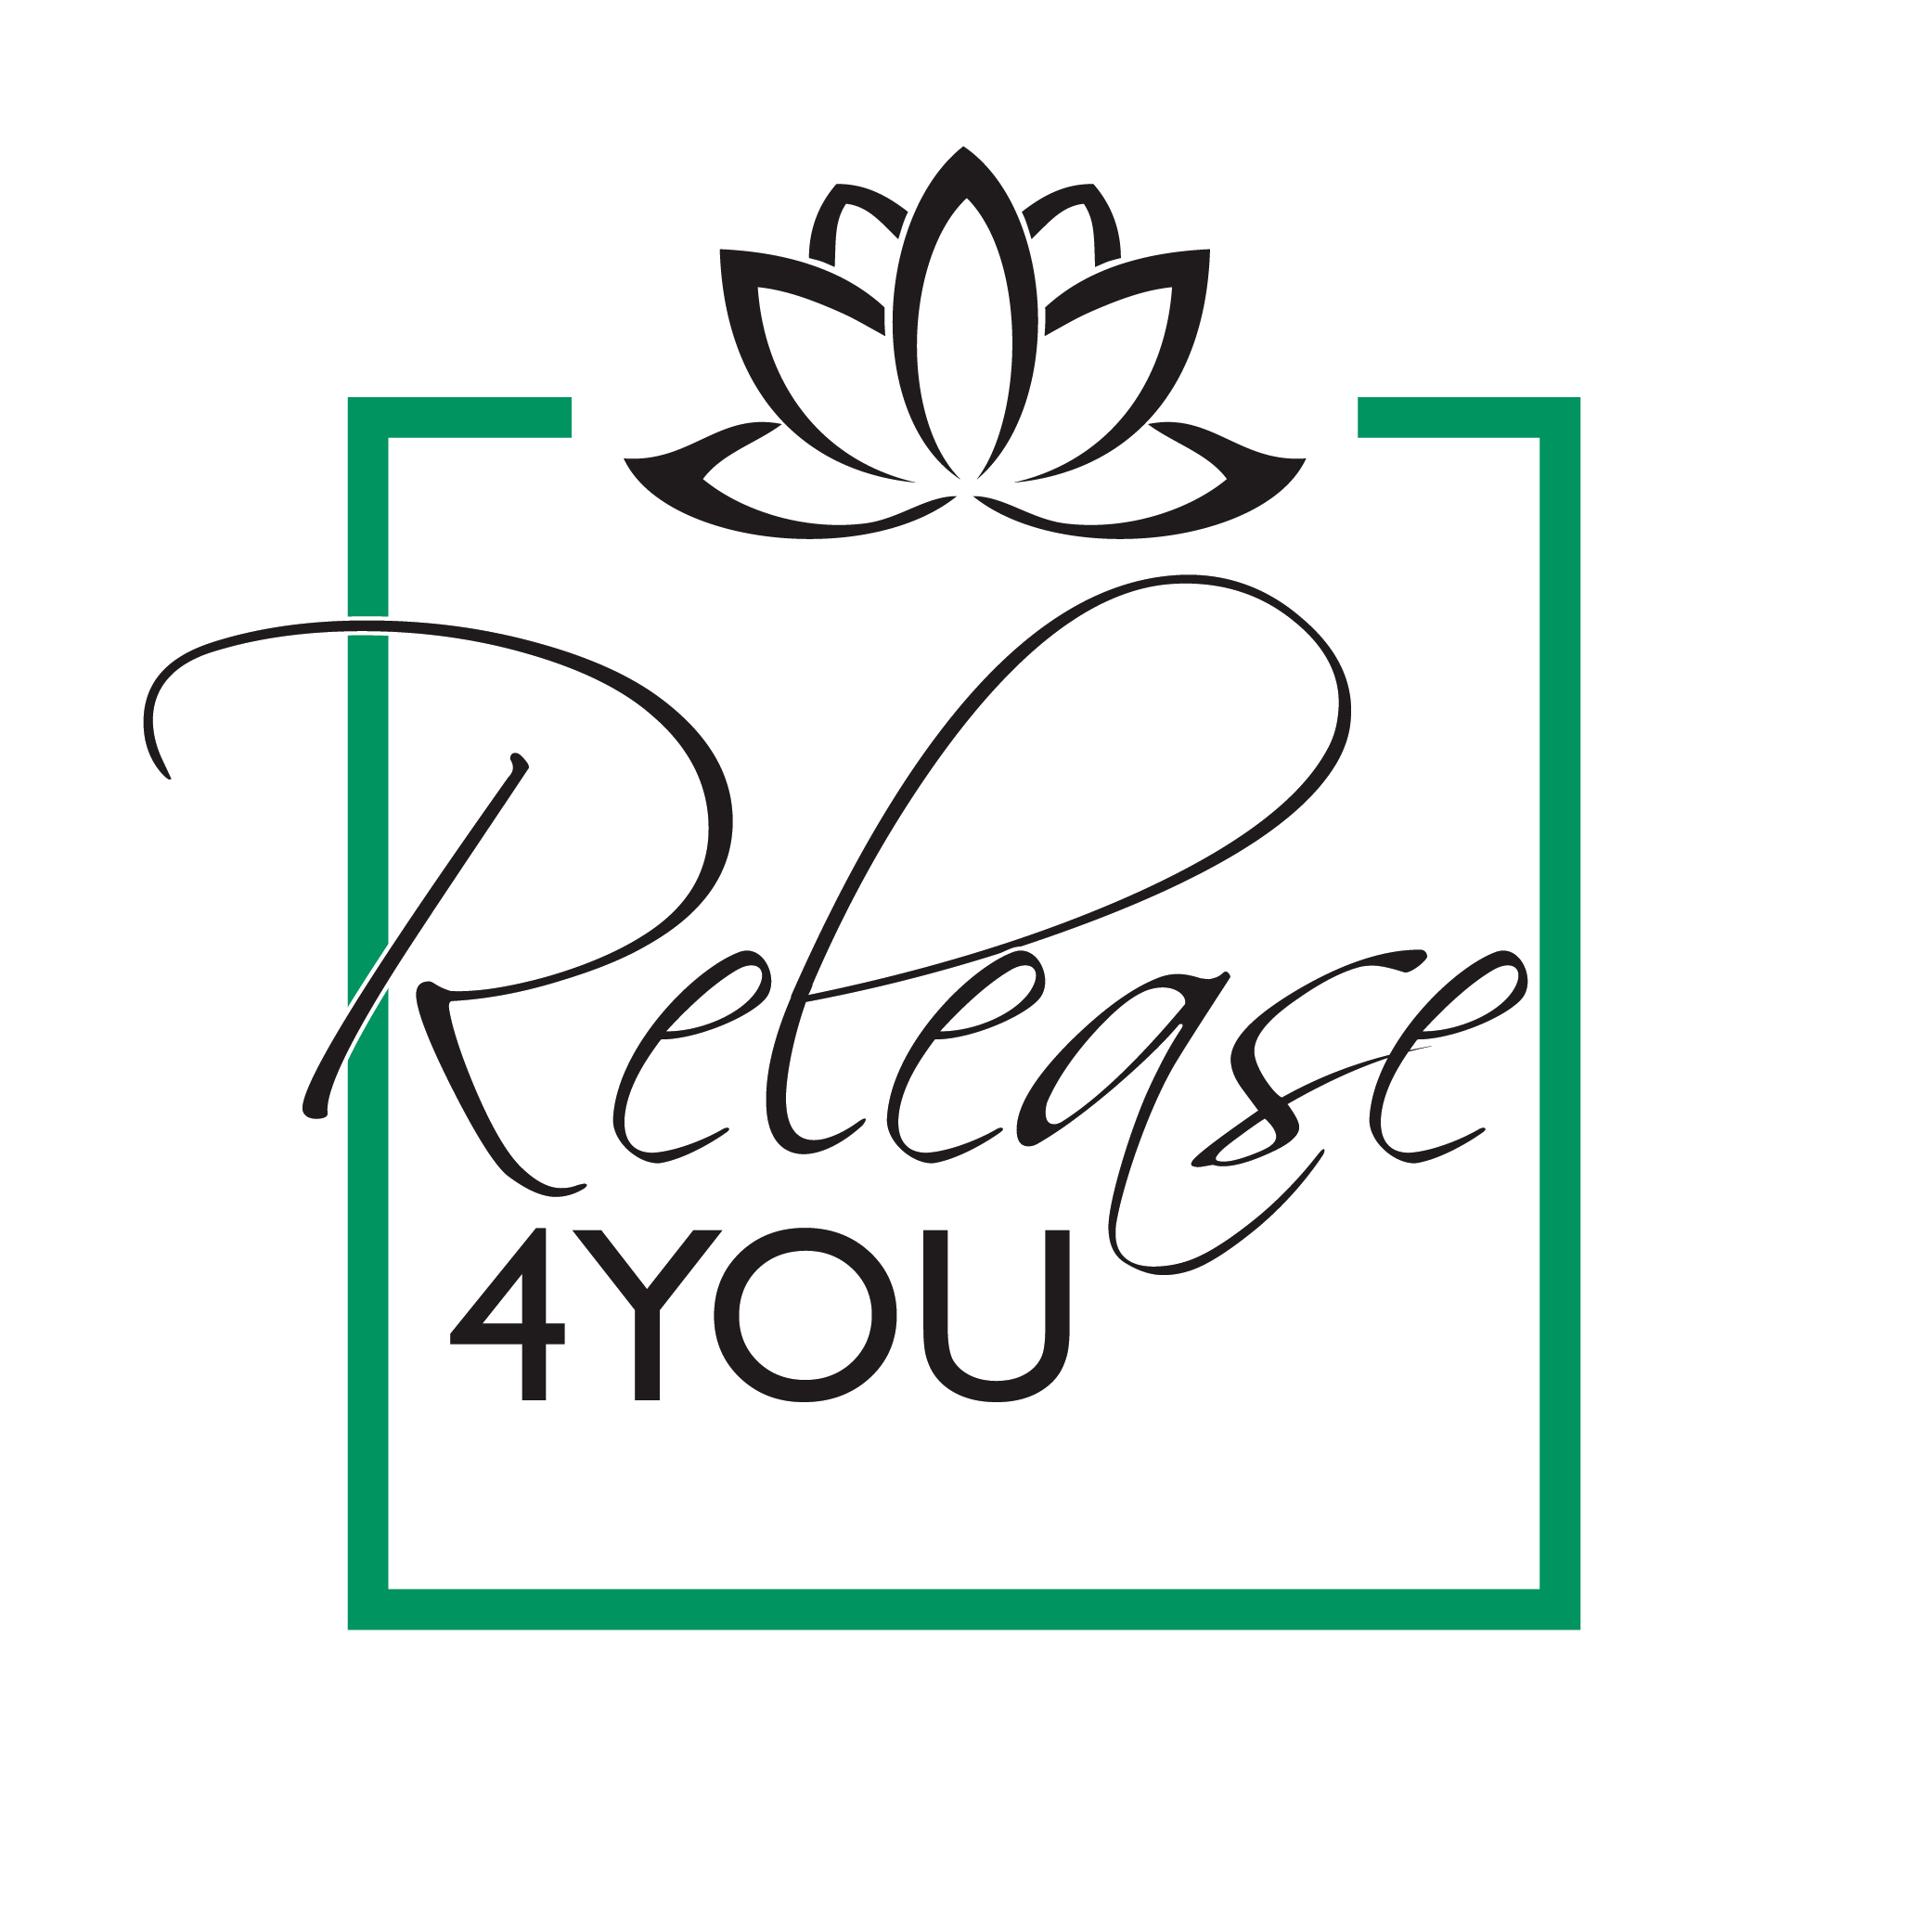 Release 4 You online